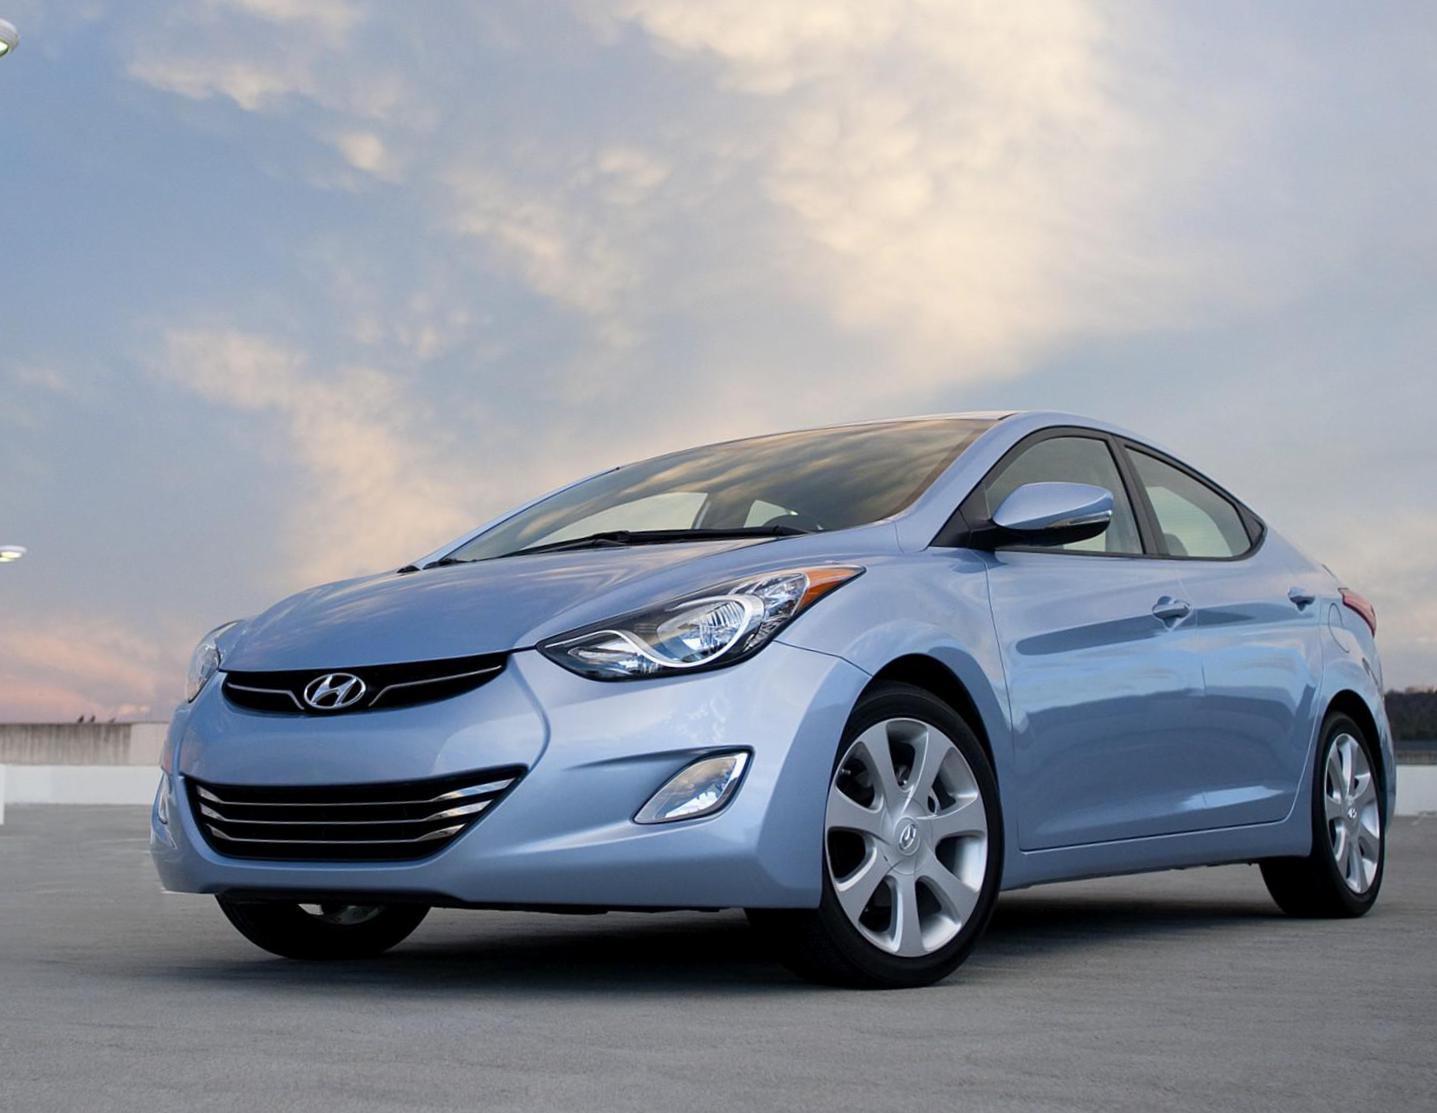 Hyundai Elantra Md Photos And Specs Photo Elantra Md